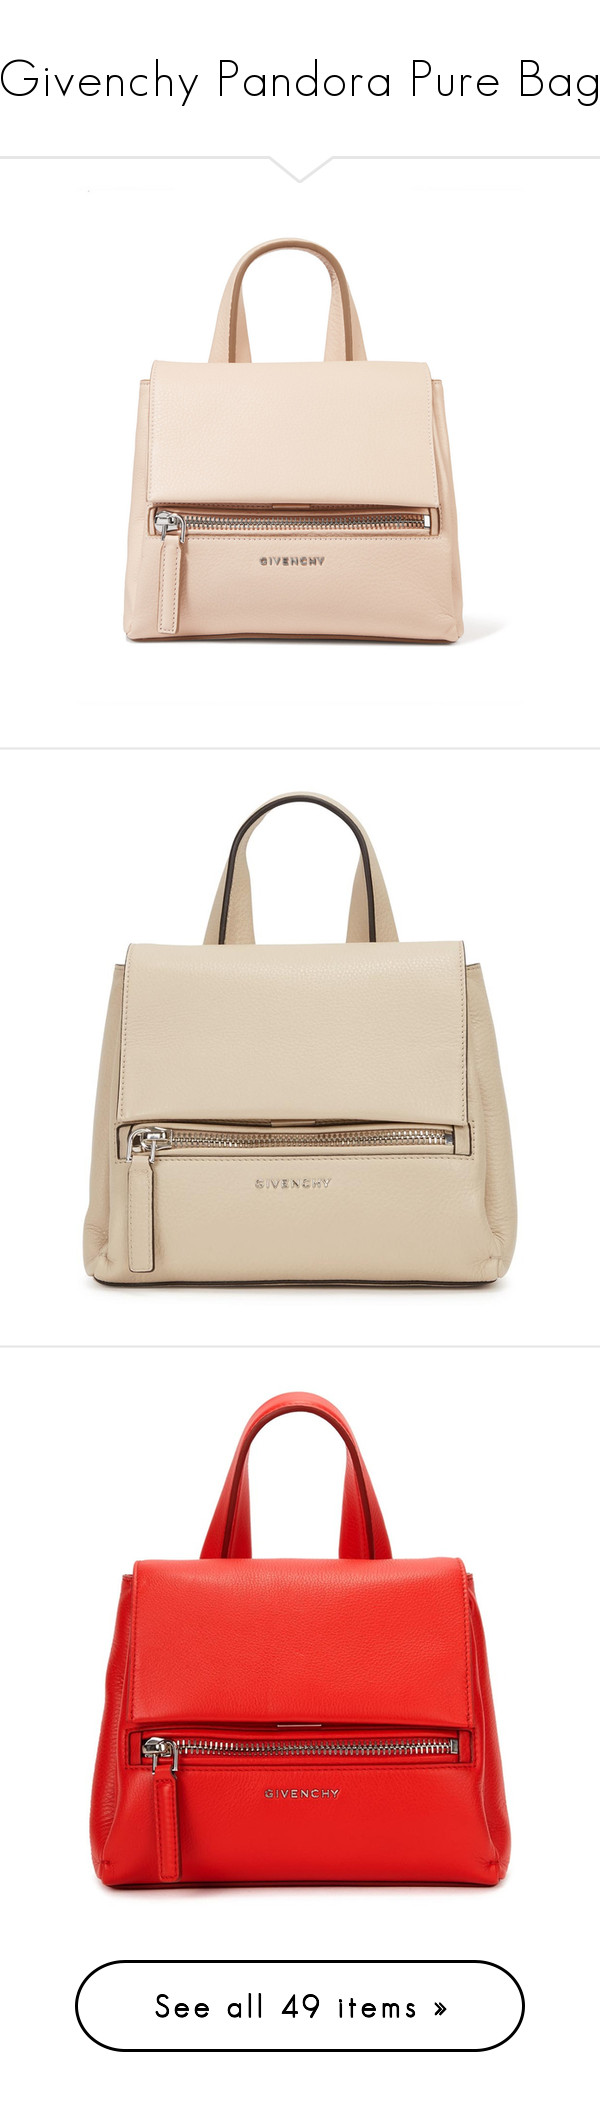 """""""Givenchy Pandora Pure Bag"""" by mungivore ❤ liked on Polyvore featuring bags, handbags, shoulder bags, blush, mini purse, mini shoulder bag, givenchy handbags, top handle purse, cell phone shoulder bag and givenchy shoulder bag"""